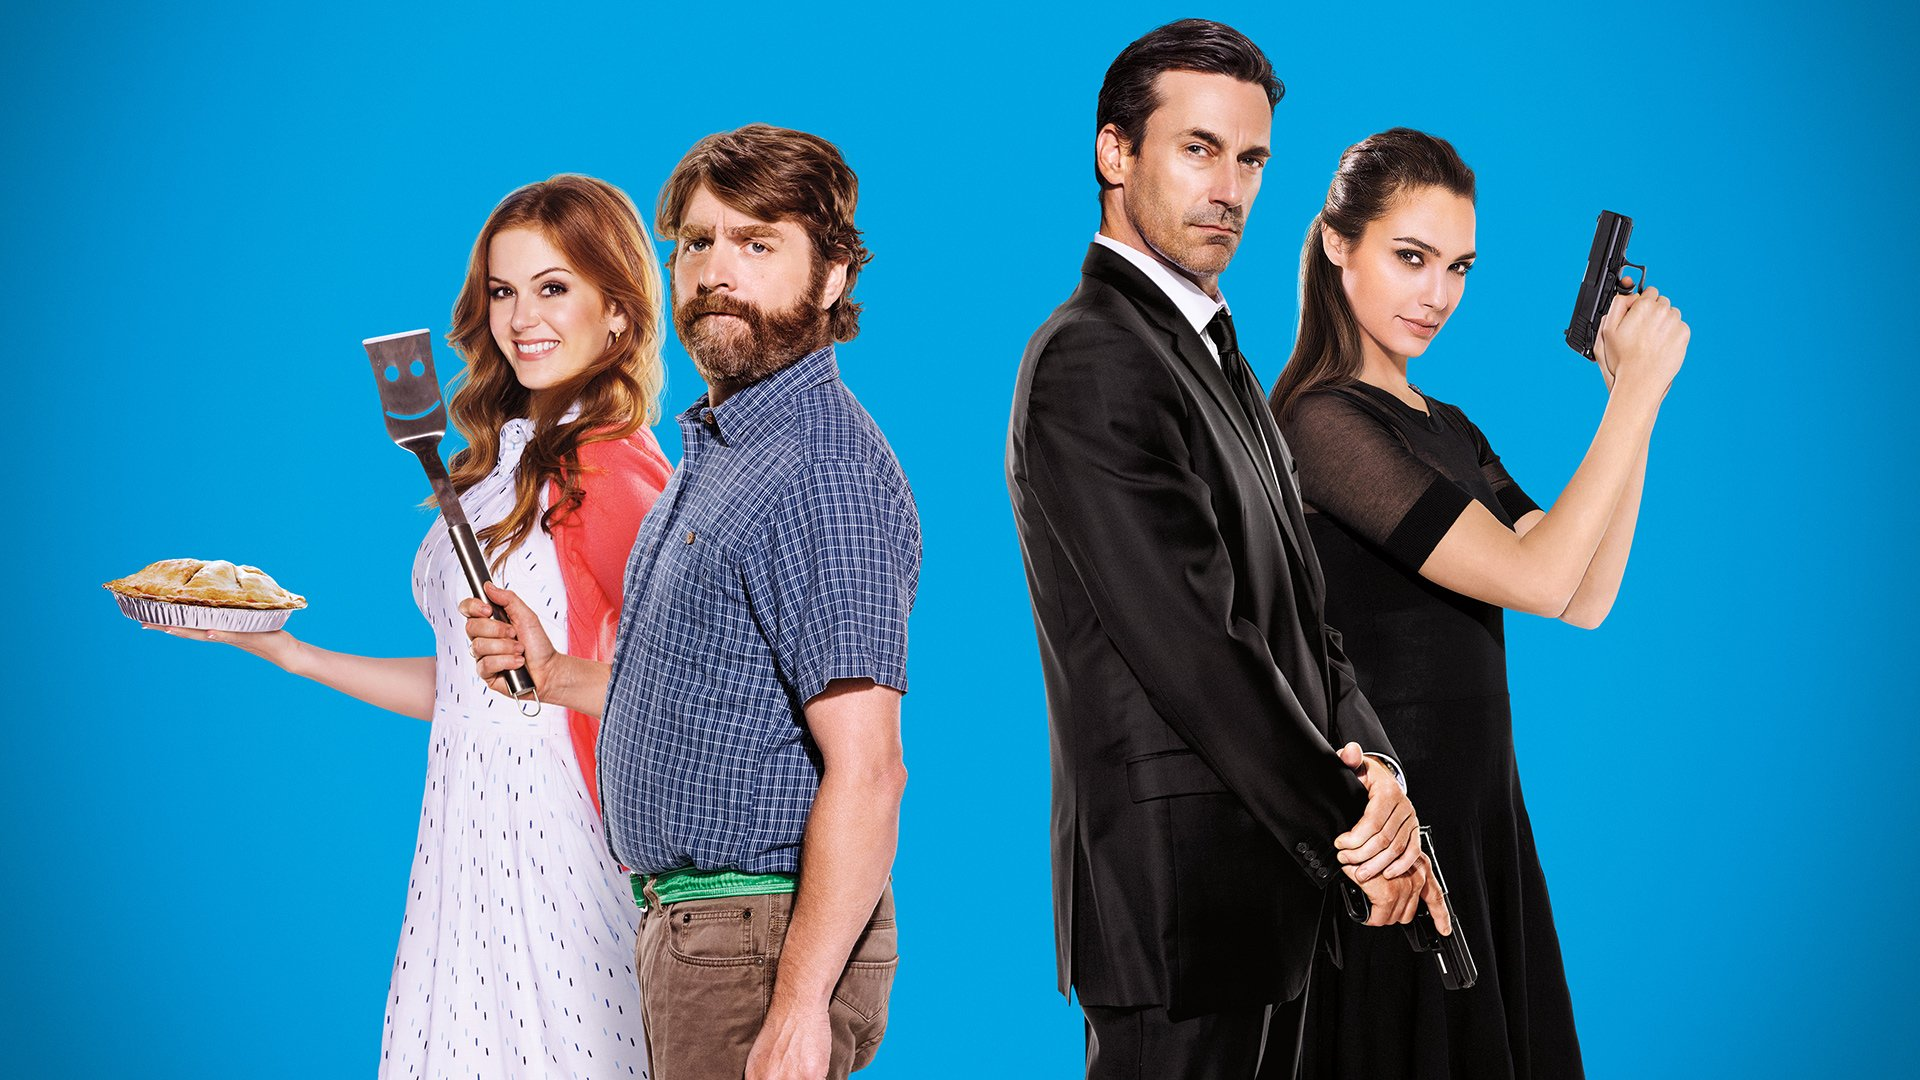 Keeping Up With The Joneses Download: Keeping Up With The Joneses HD Wallpaper